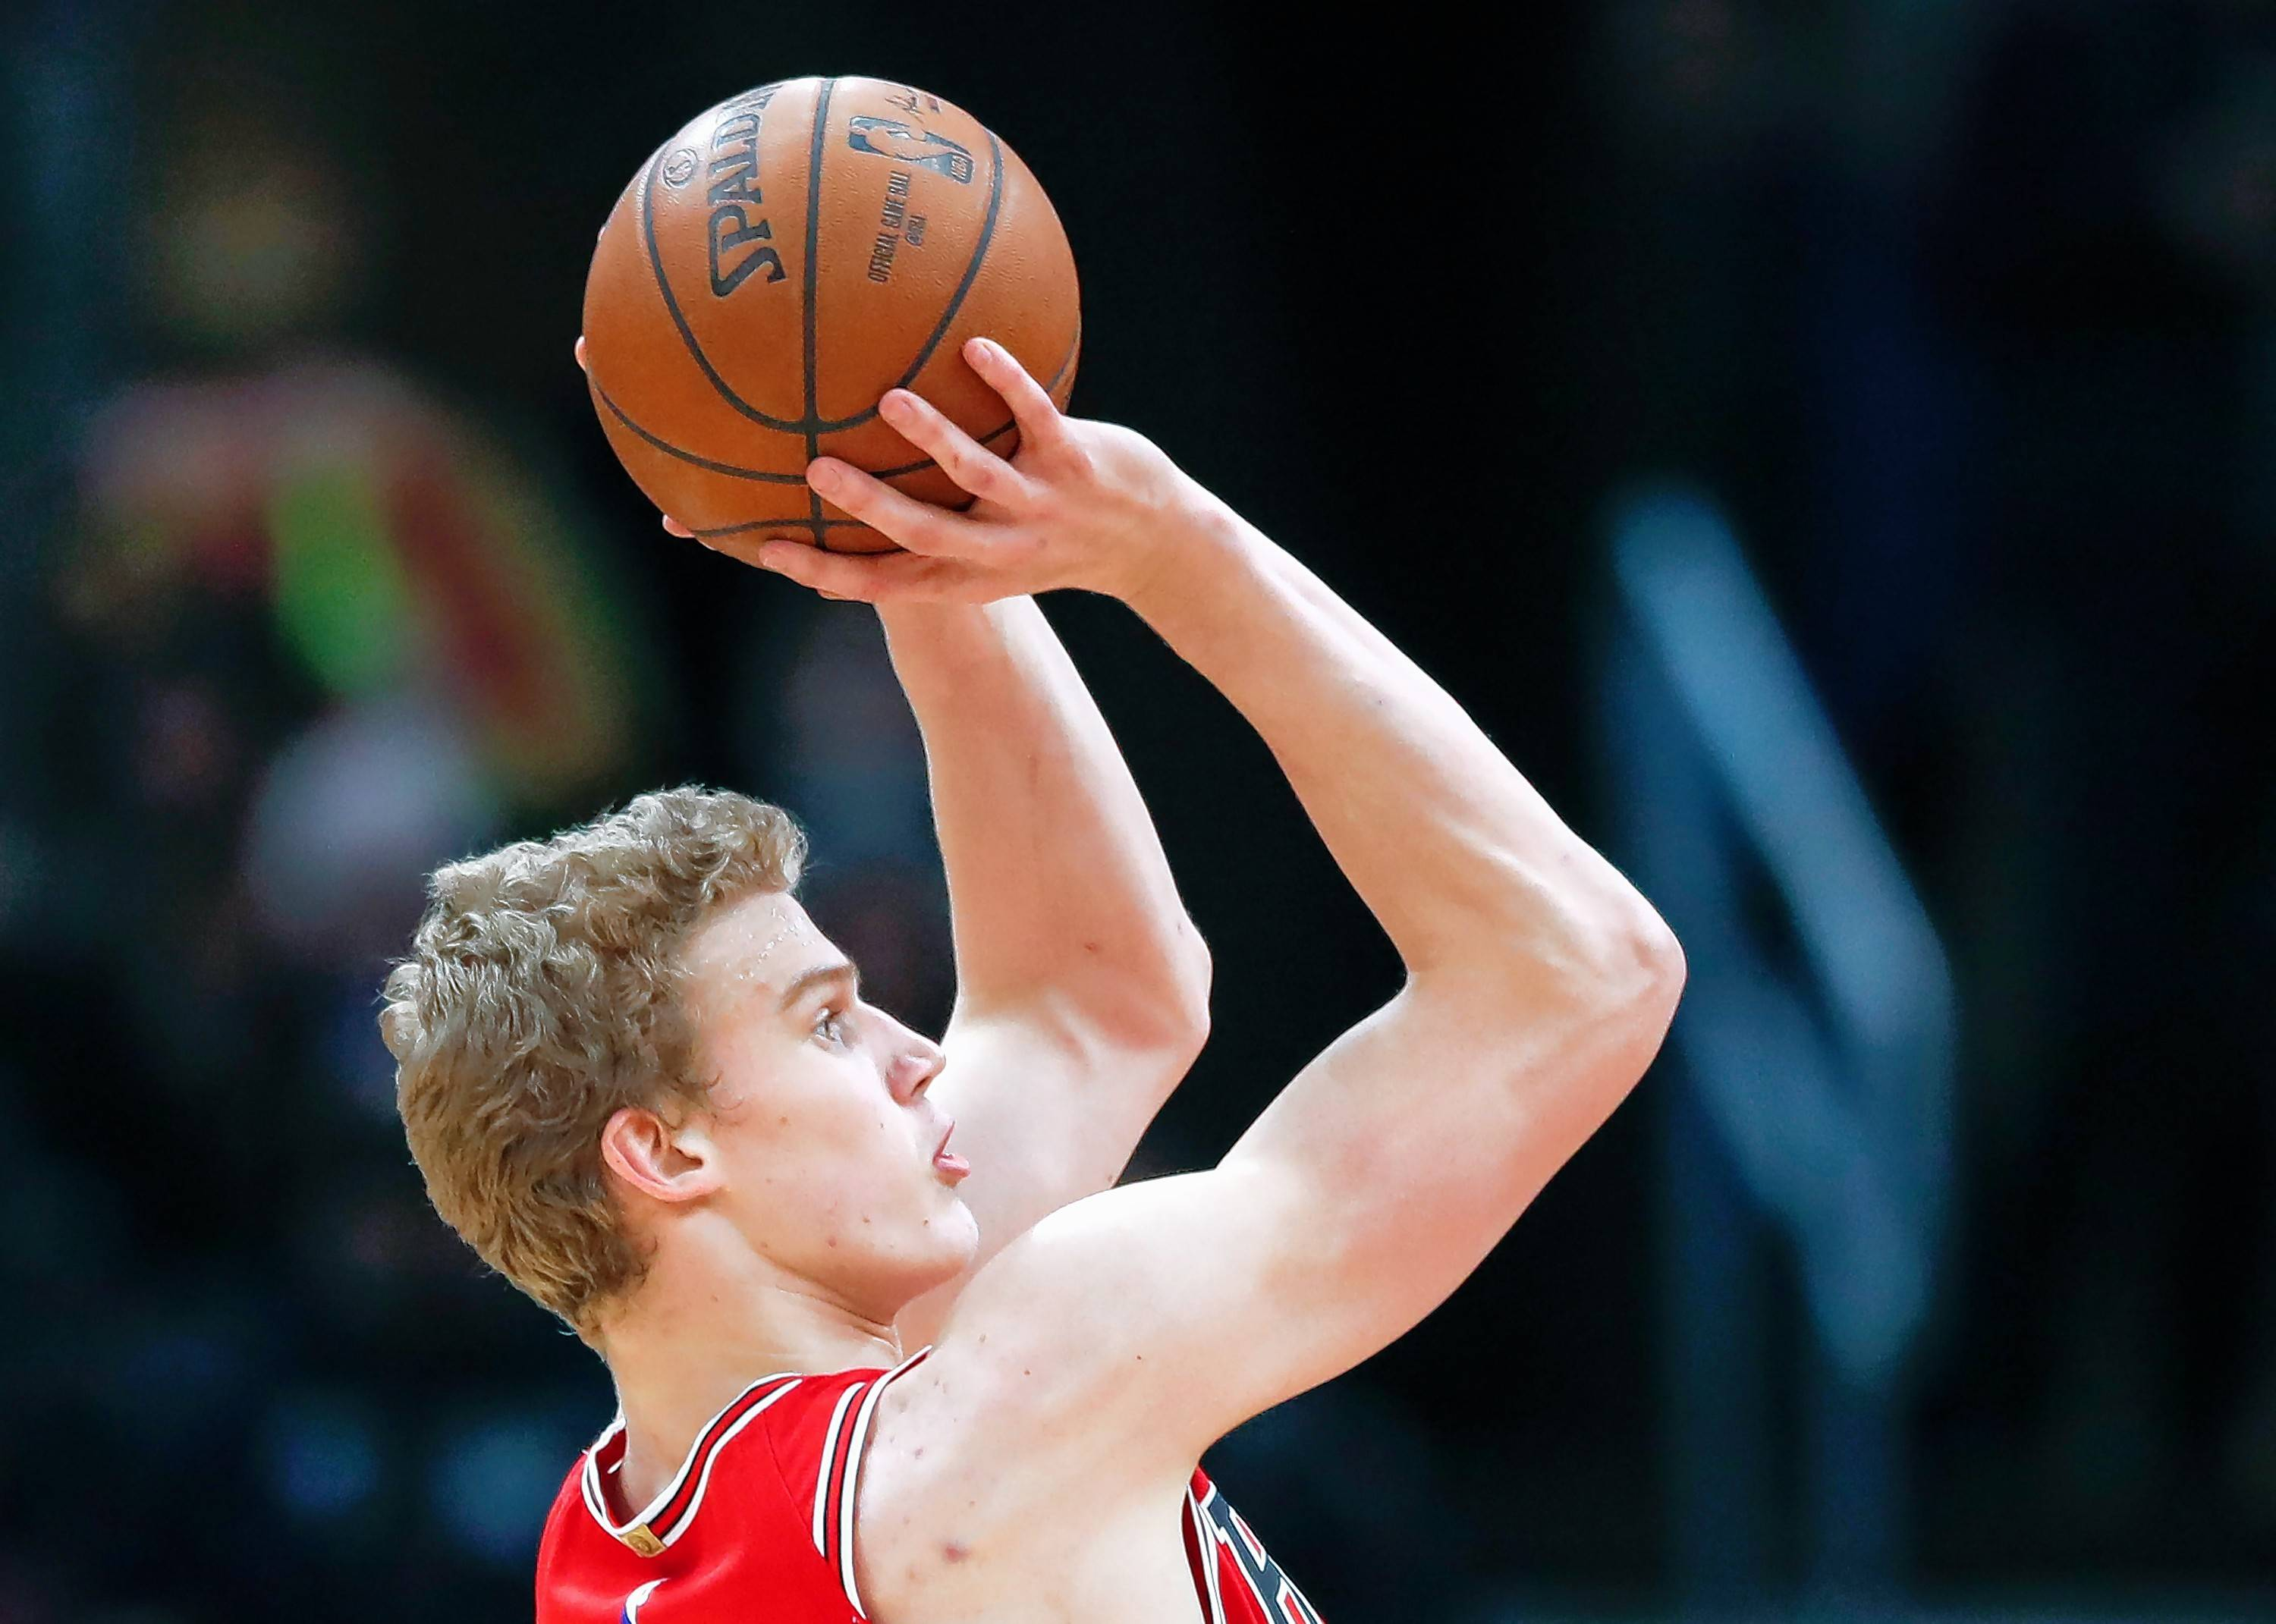 Markkanen excelled at the eye test with smooth stroke, impressive athleticism